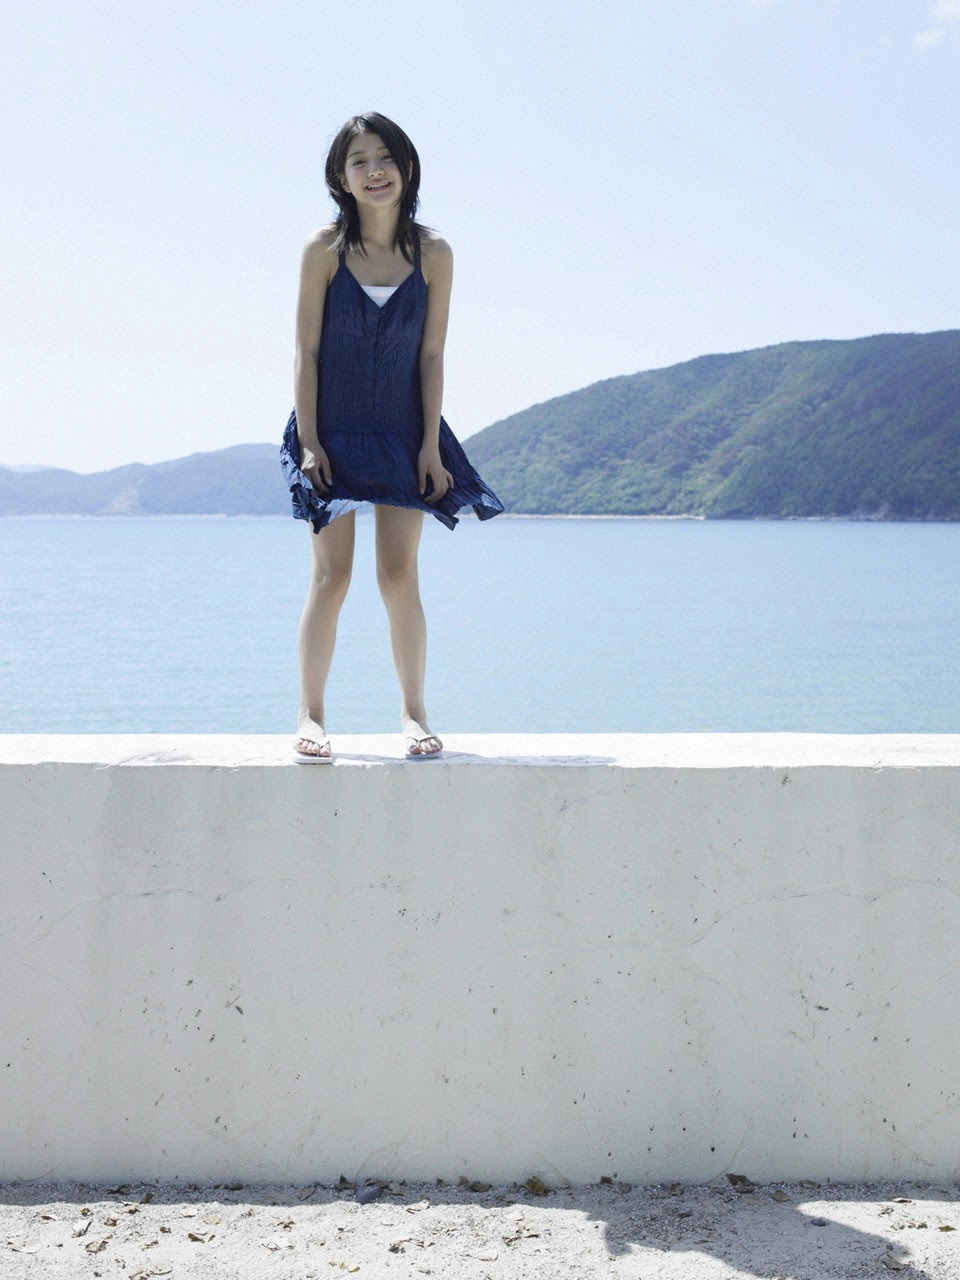 Umi chans smile explodes on some southern island162